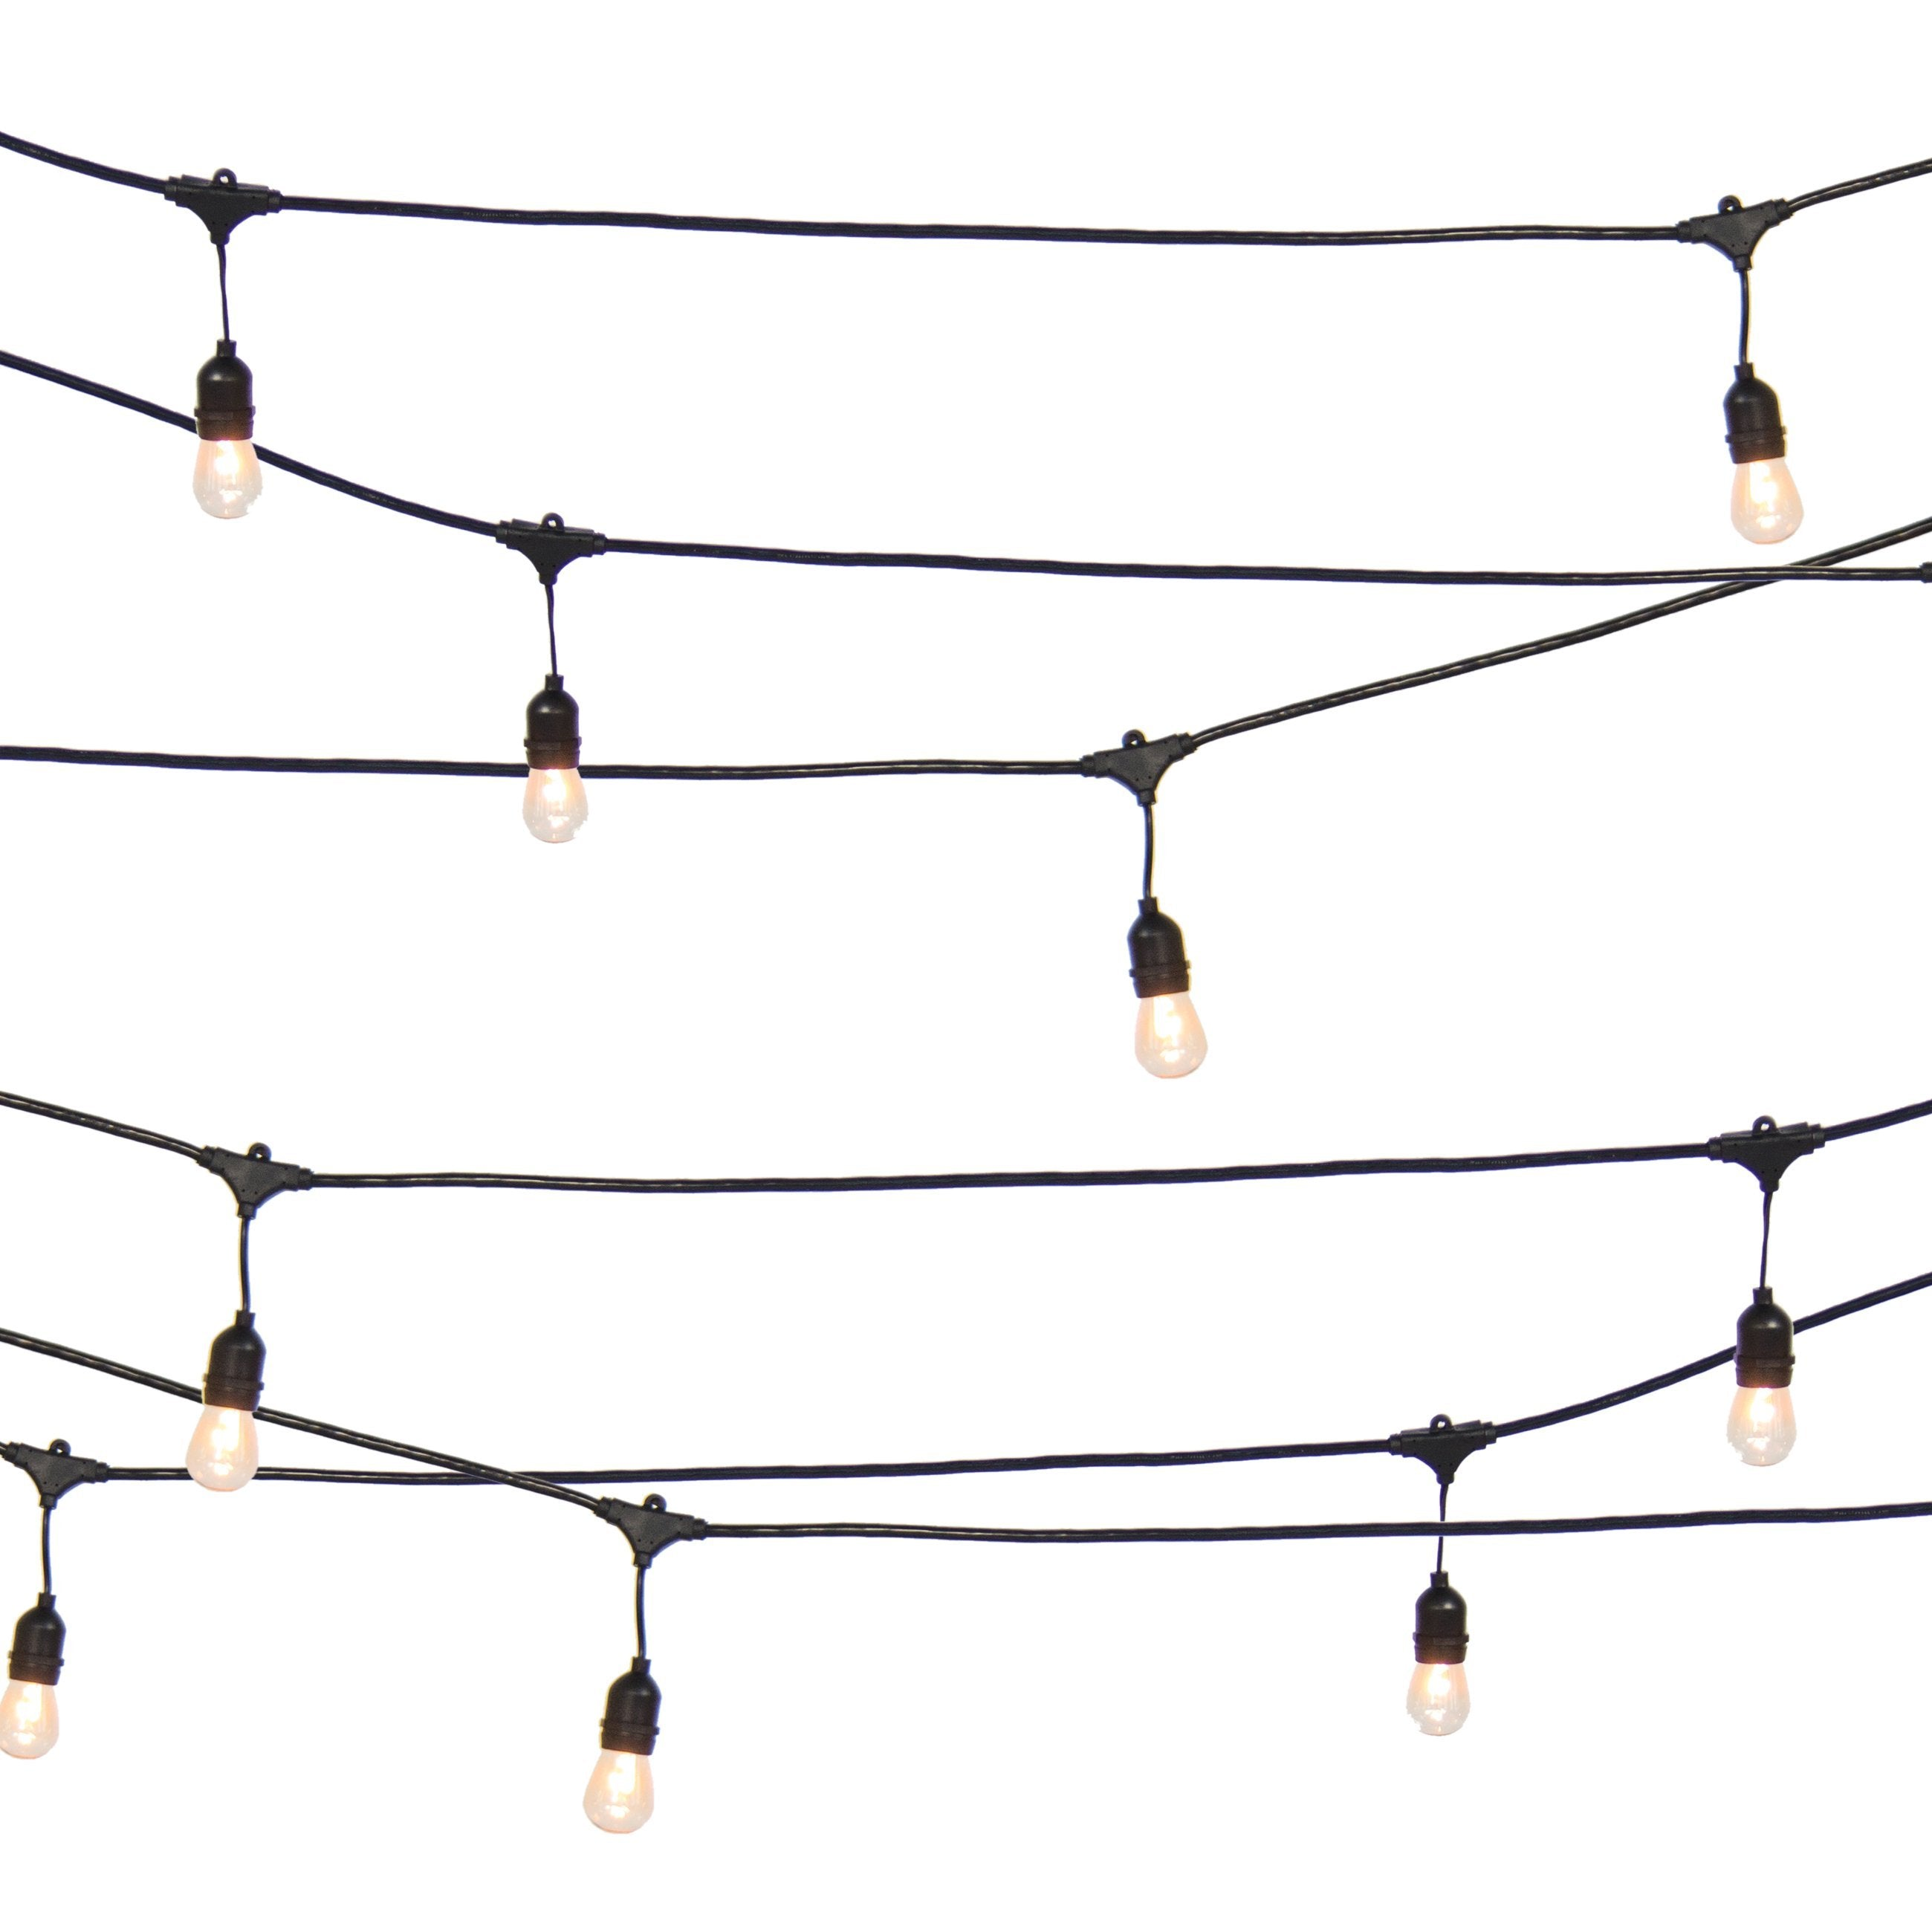 48ft Commercial Weatherproof Patio String Lights - Black